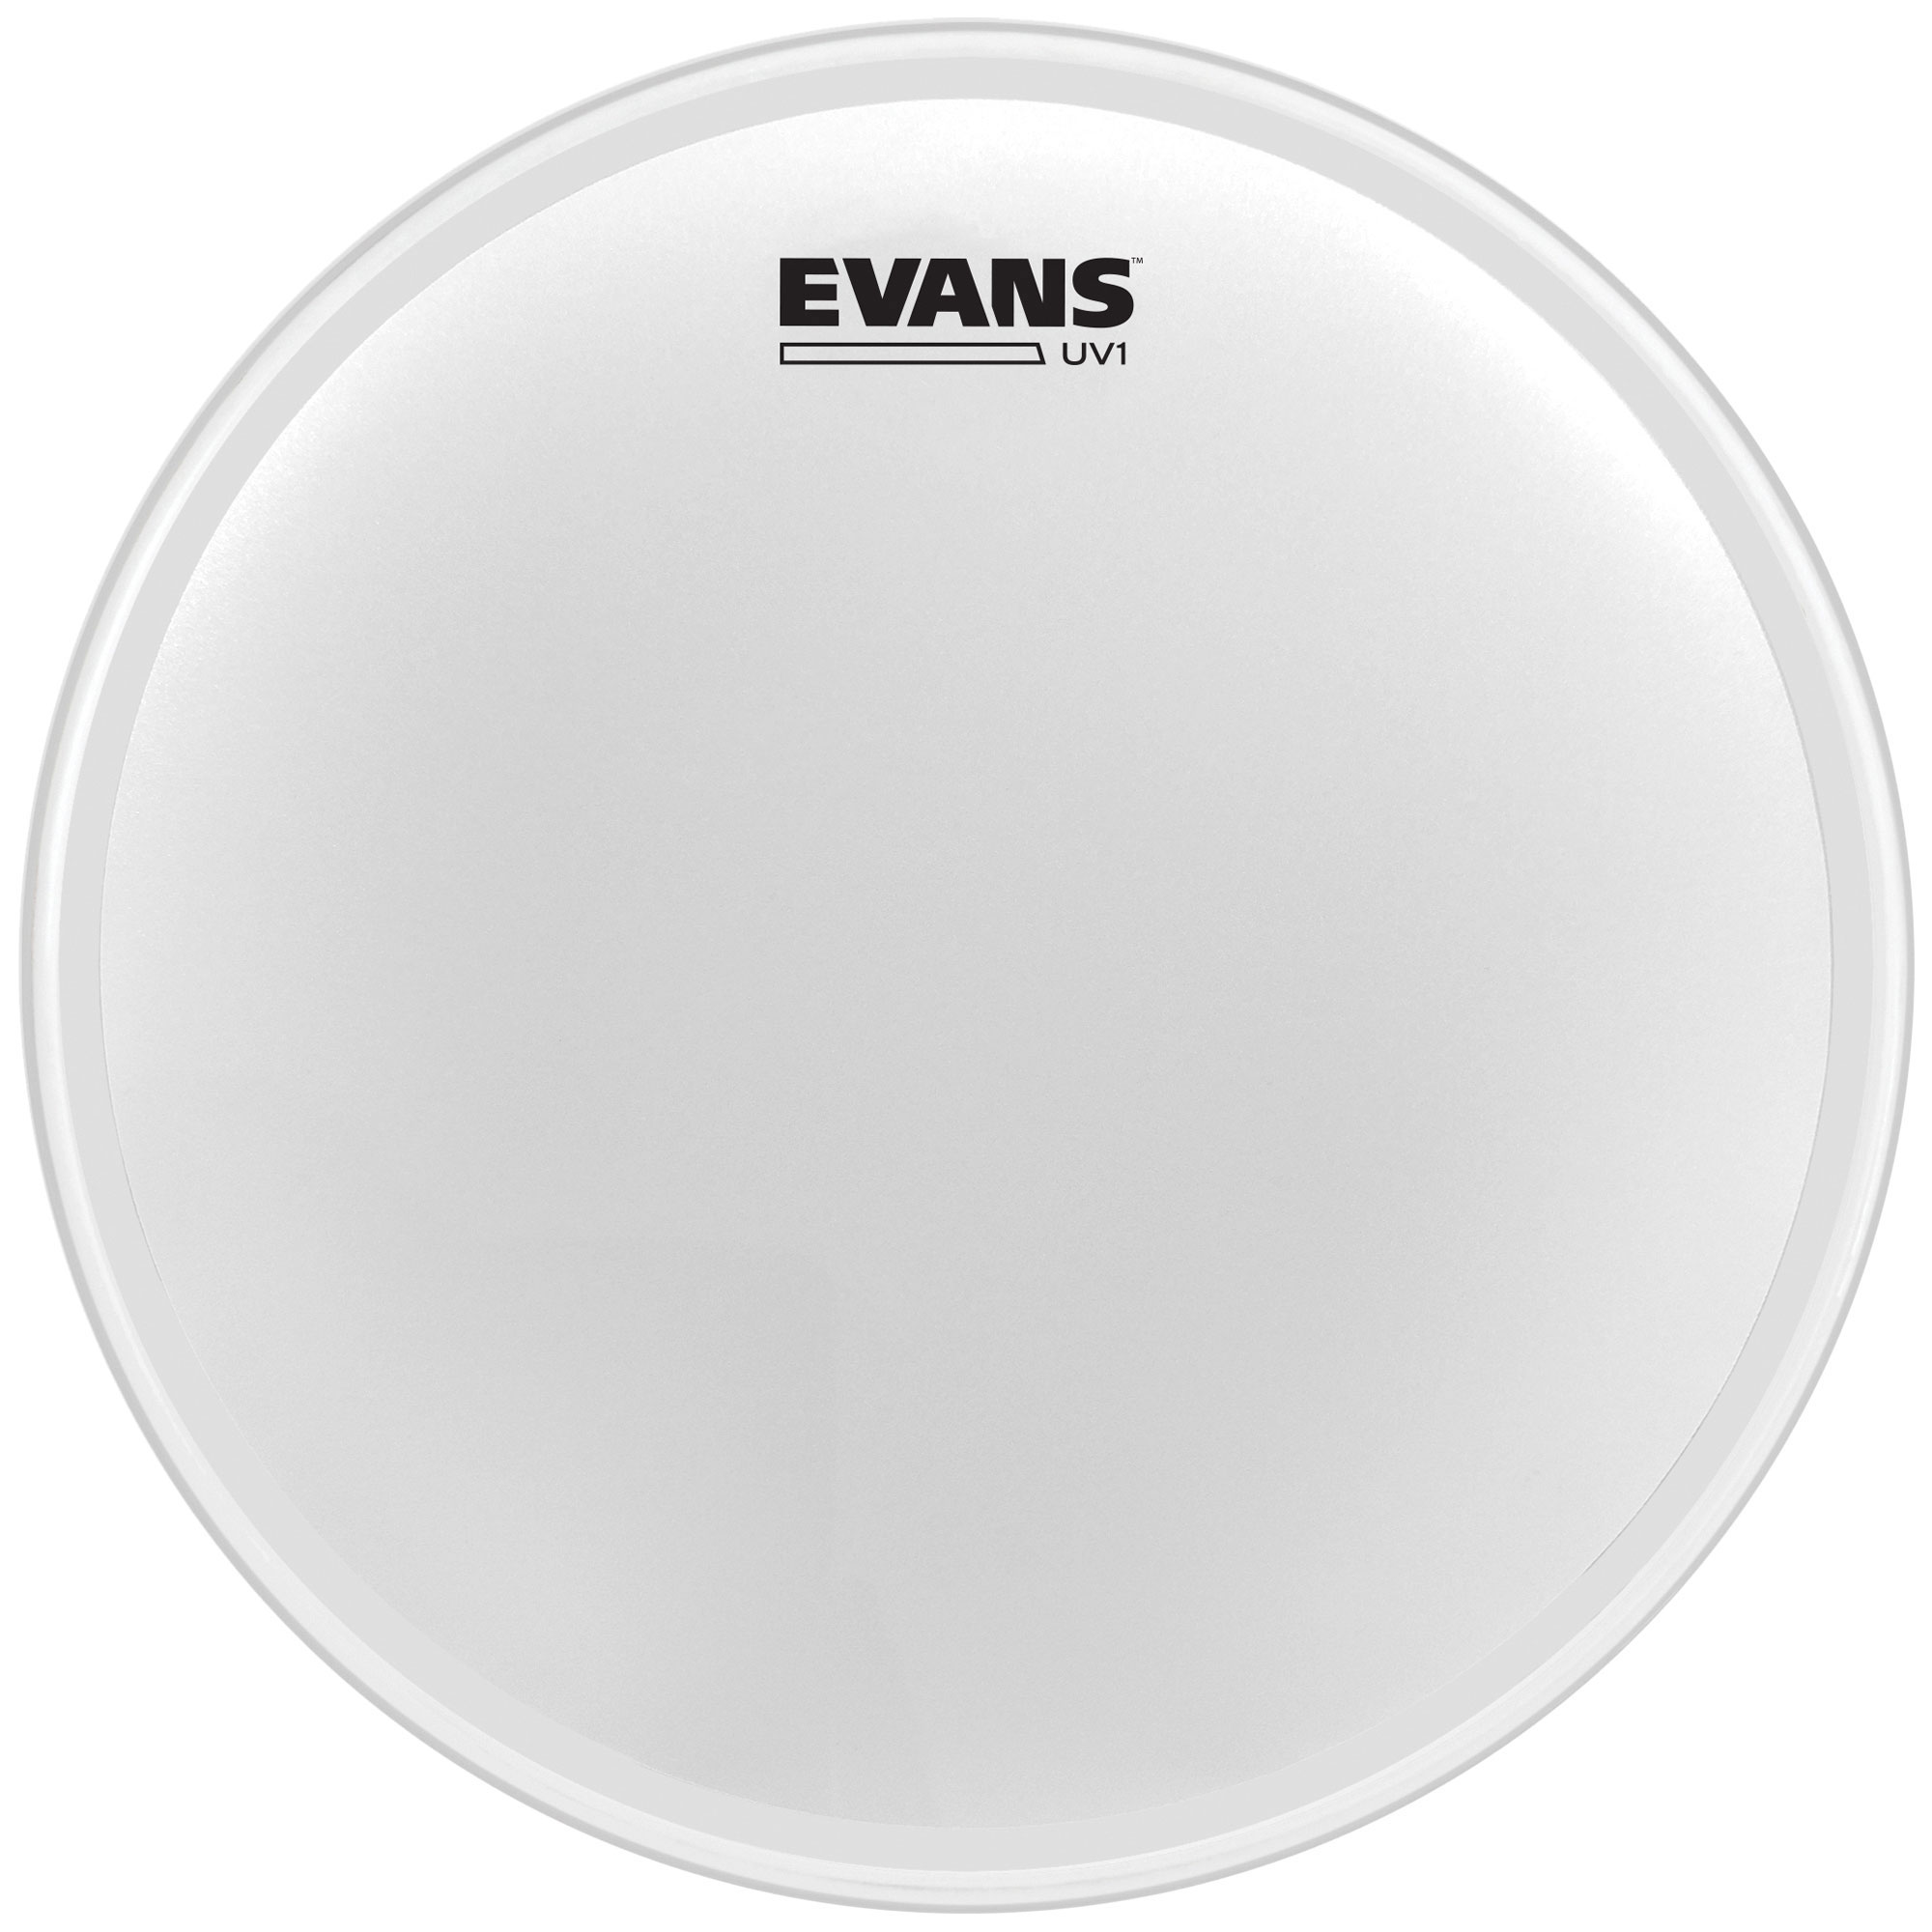 "Evans 13"" UV1 Coated Drum Head"